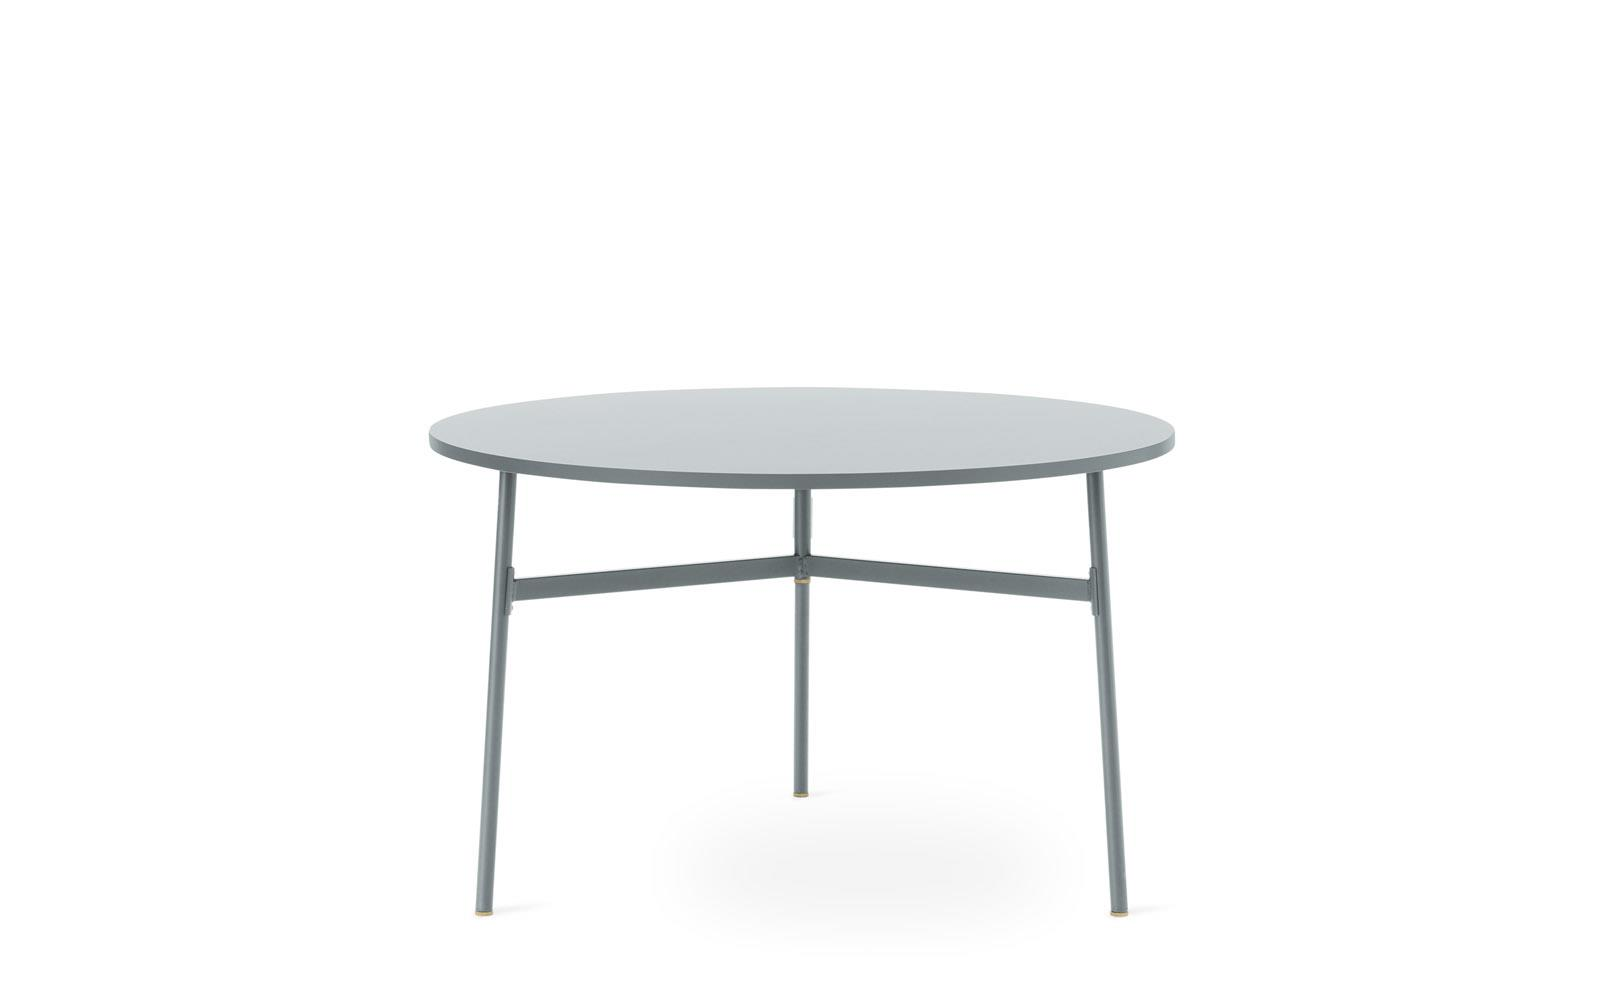 Union Table 120 x H745 cm2